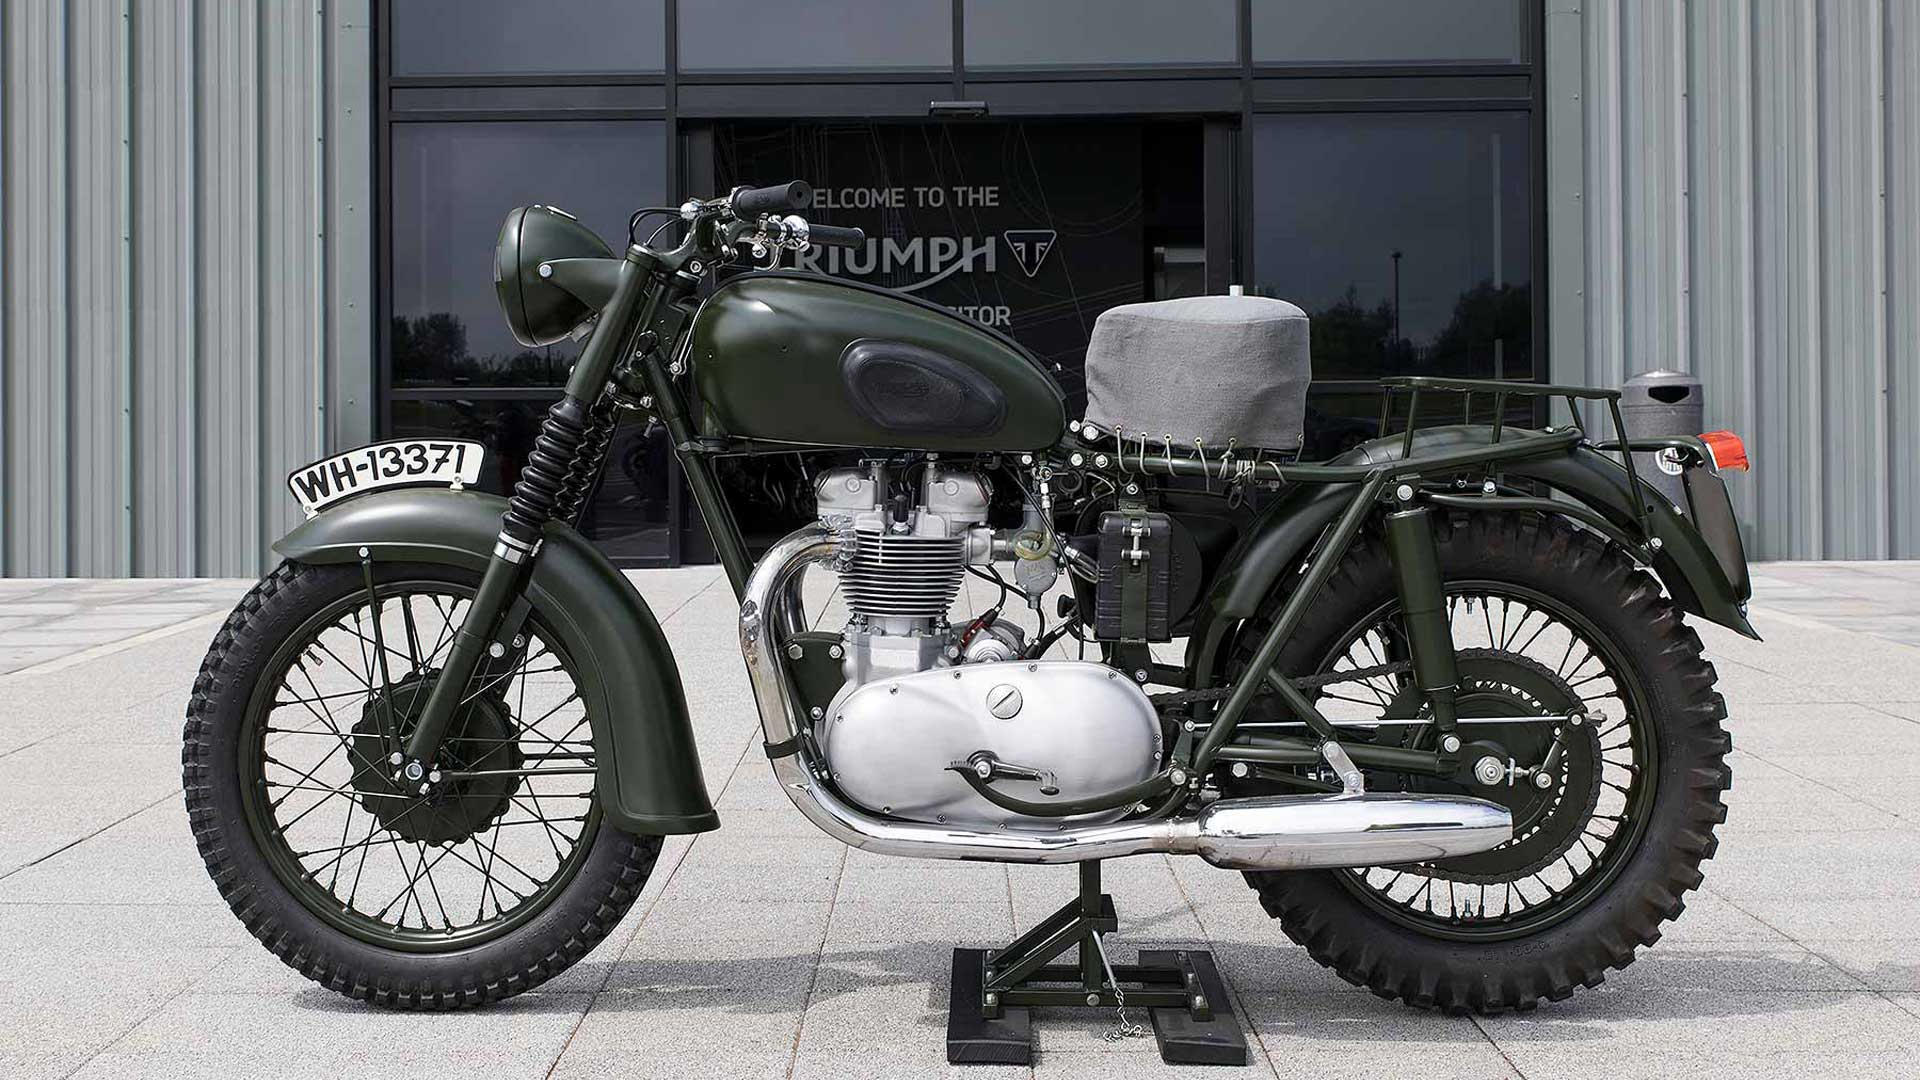 Triumph Tr6 Trophy From The Great Escape On Display Bikesrepublic